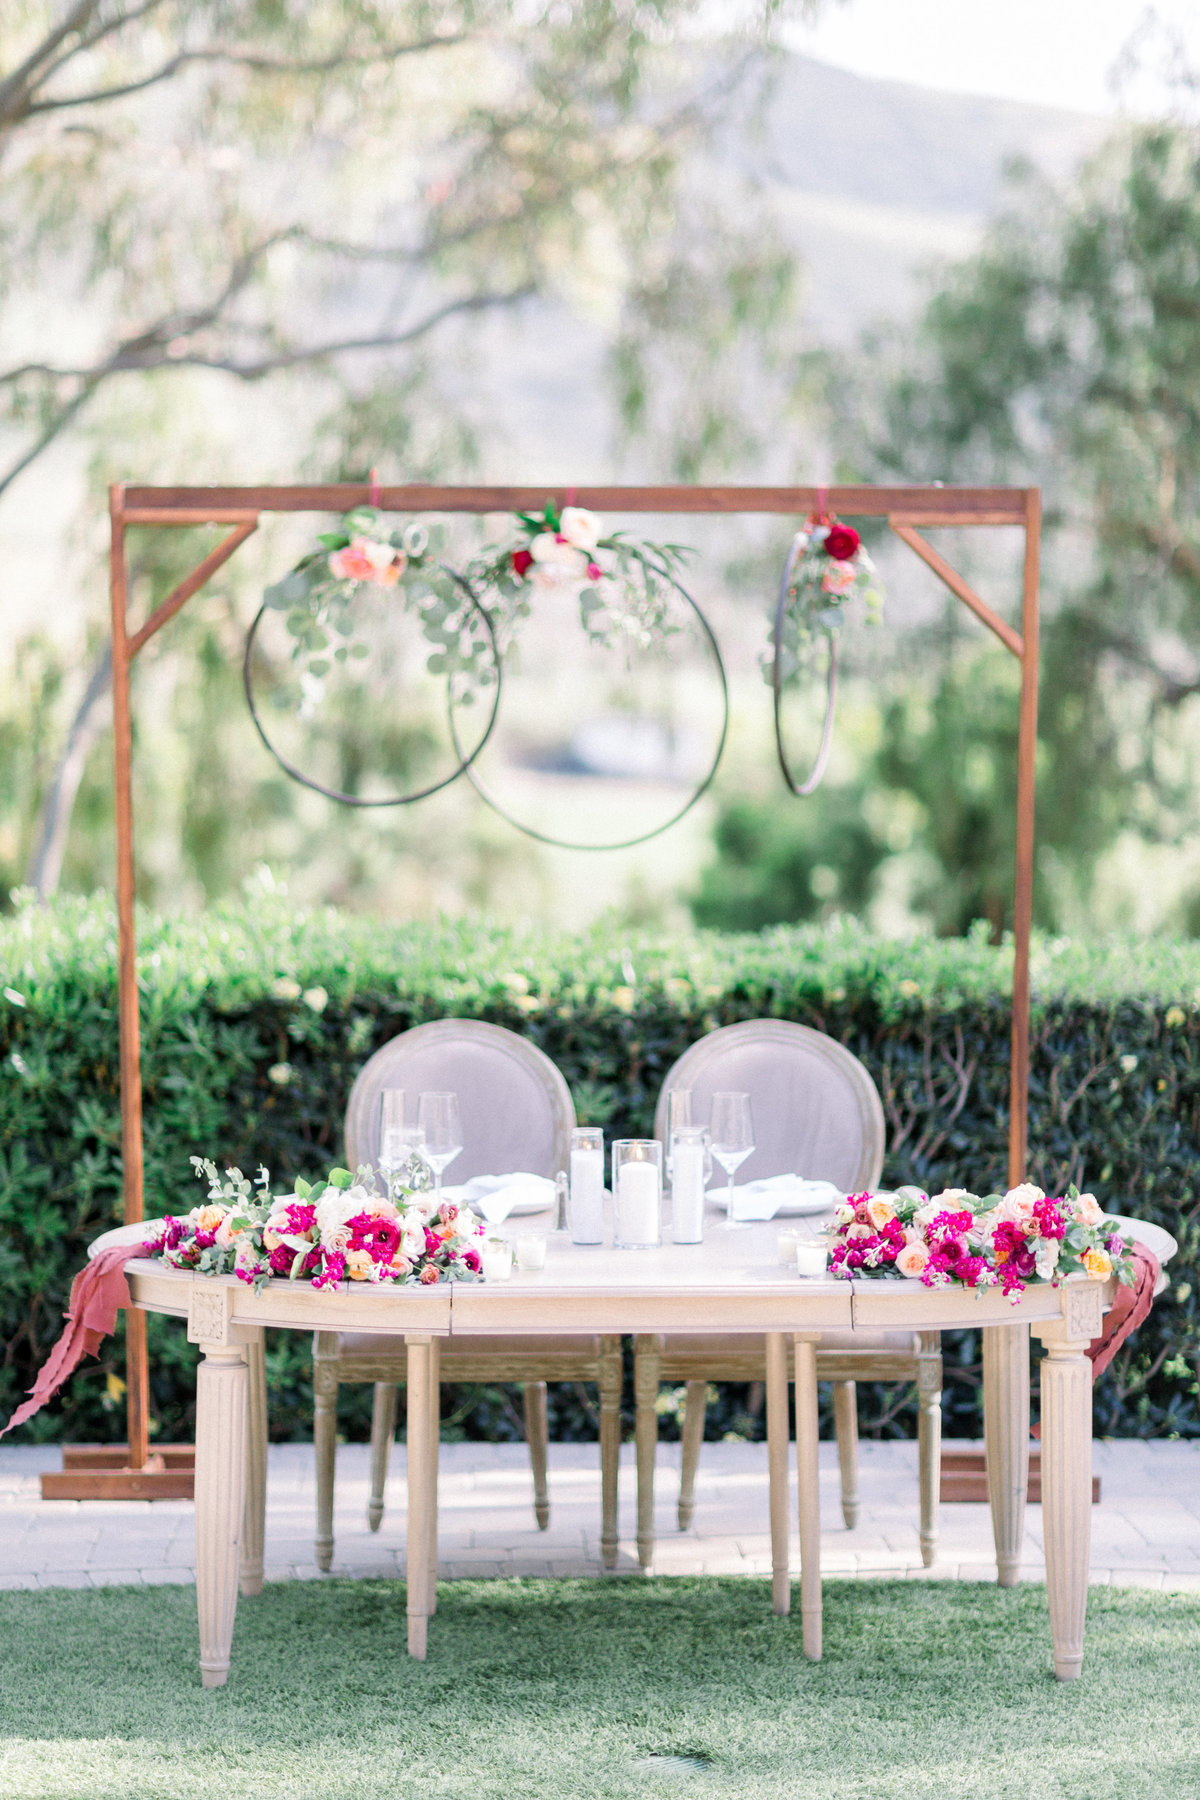 Wedding reception sweetheart table with hanging circle floral arrangements and mauve, pink and orange flowers at Maravilla Gardens